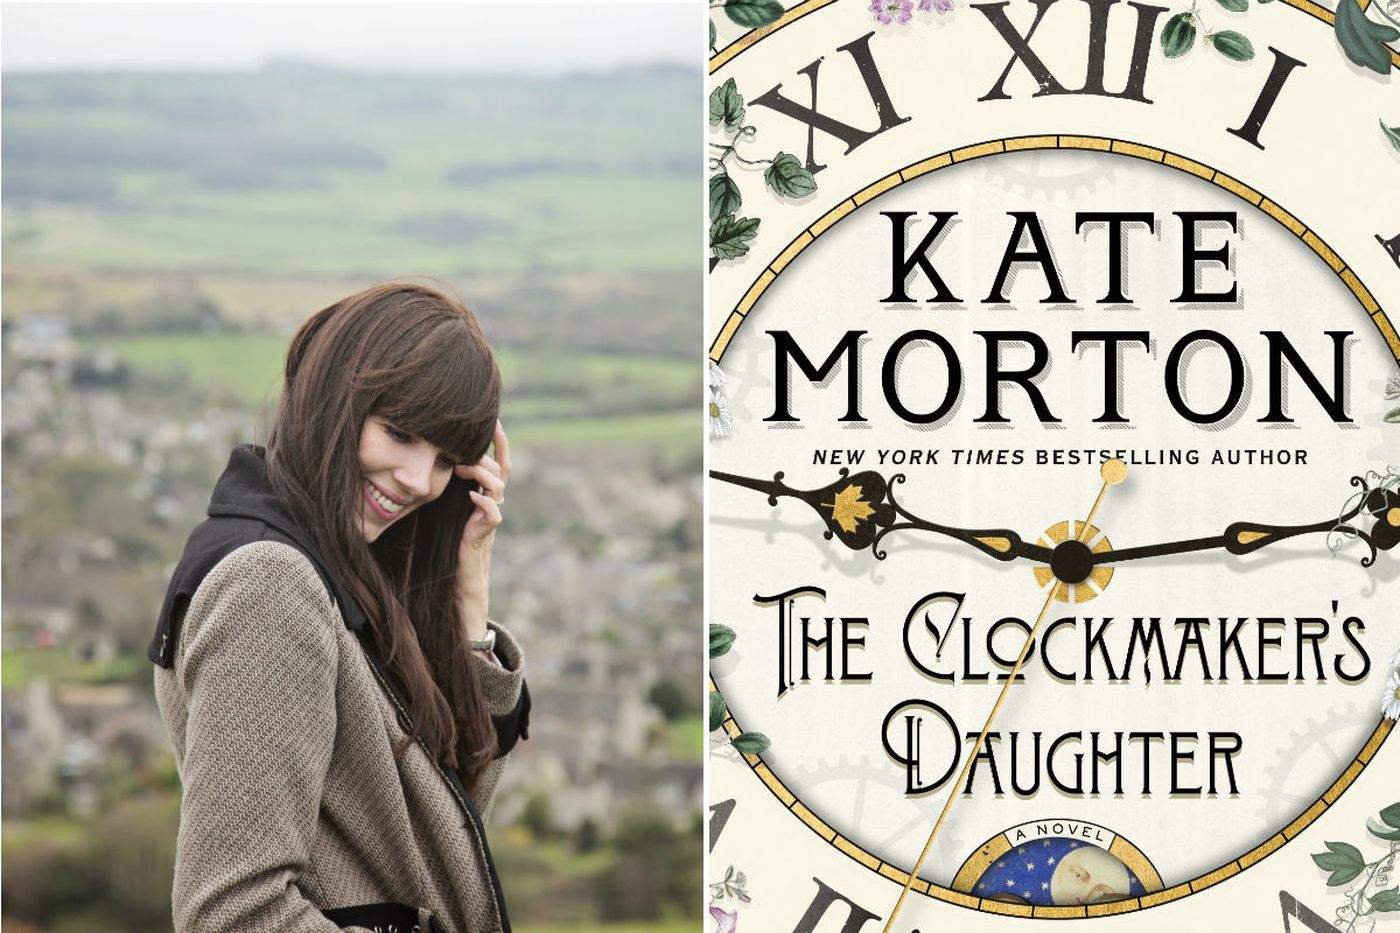 Kate Morton's 'Clockmaker's Daughter': An over-wound tale that ends right on time